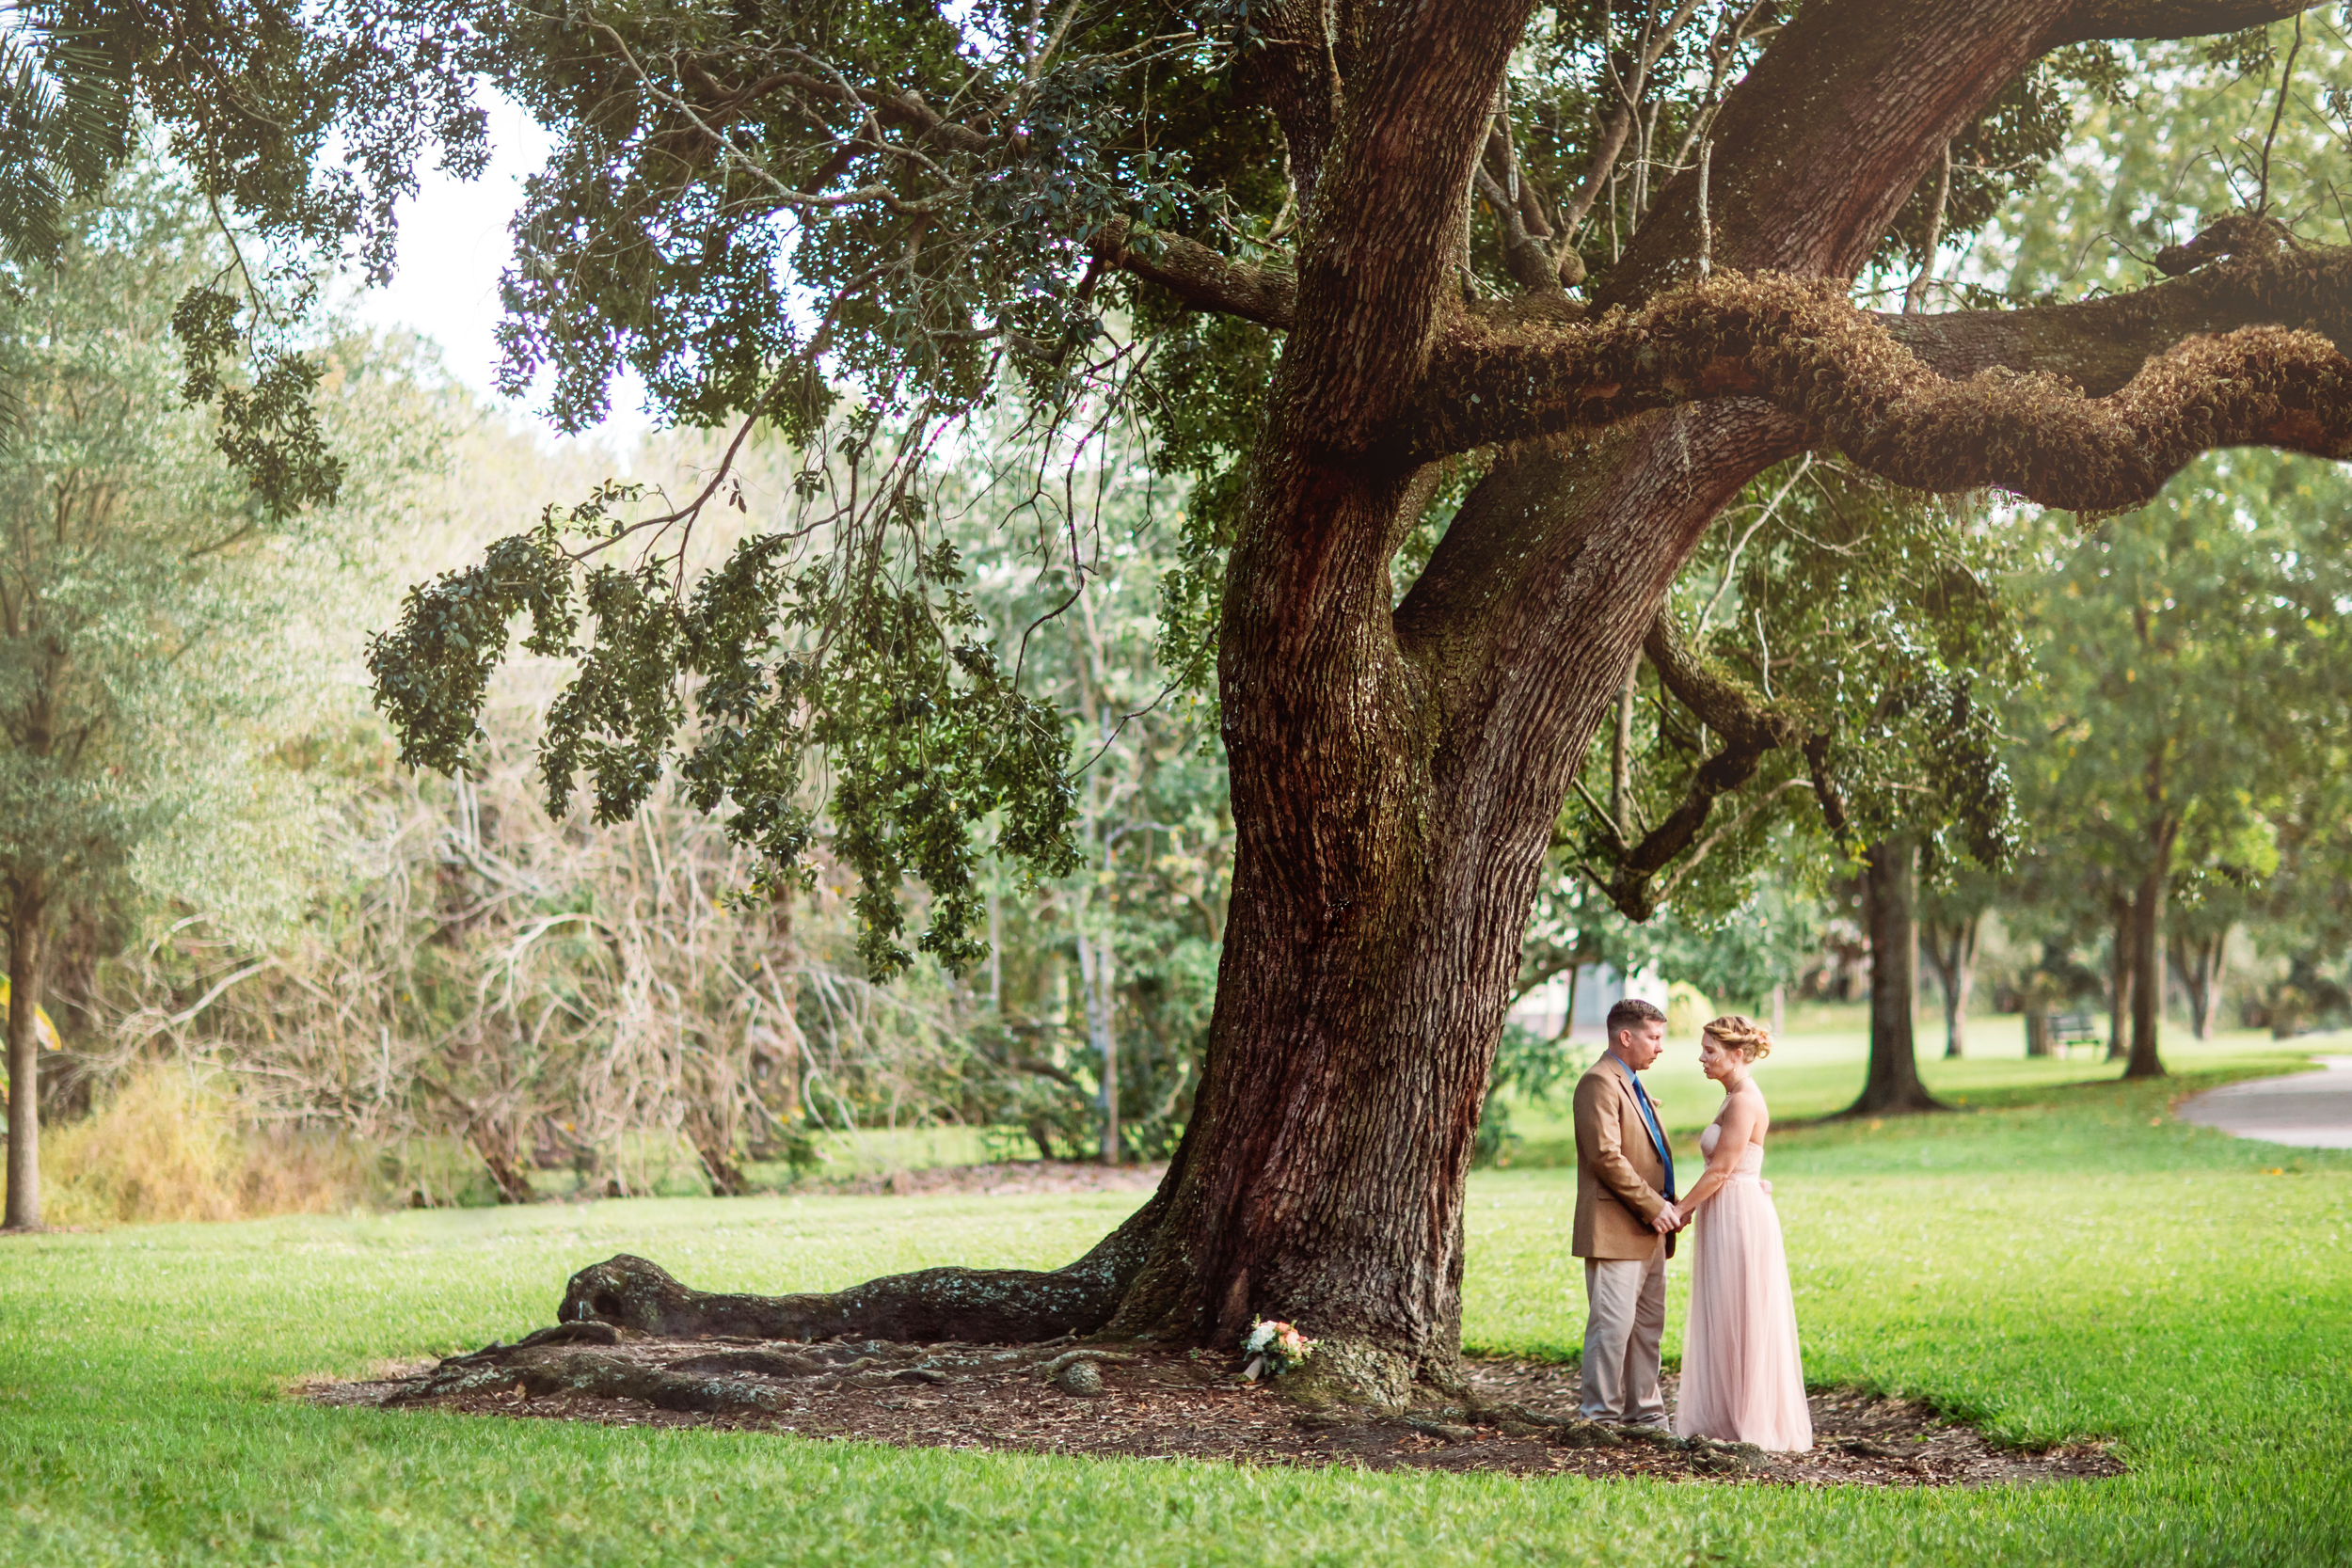 Angie & Joel take a moment to pray together before their ceremony begins underneath one of the beautiful ancient live oak trees in downtown Orlando's Langford Park.